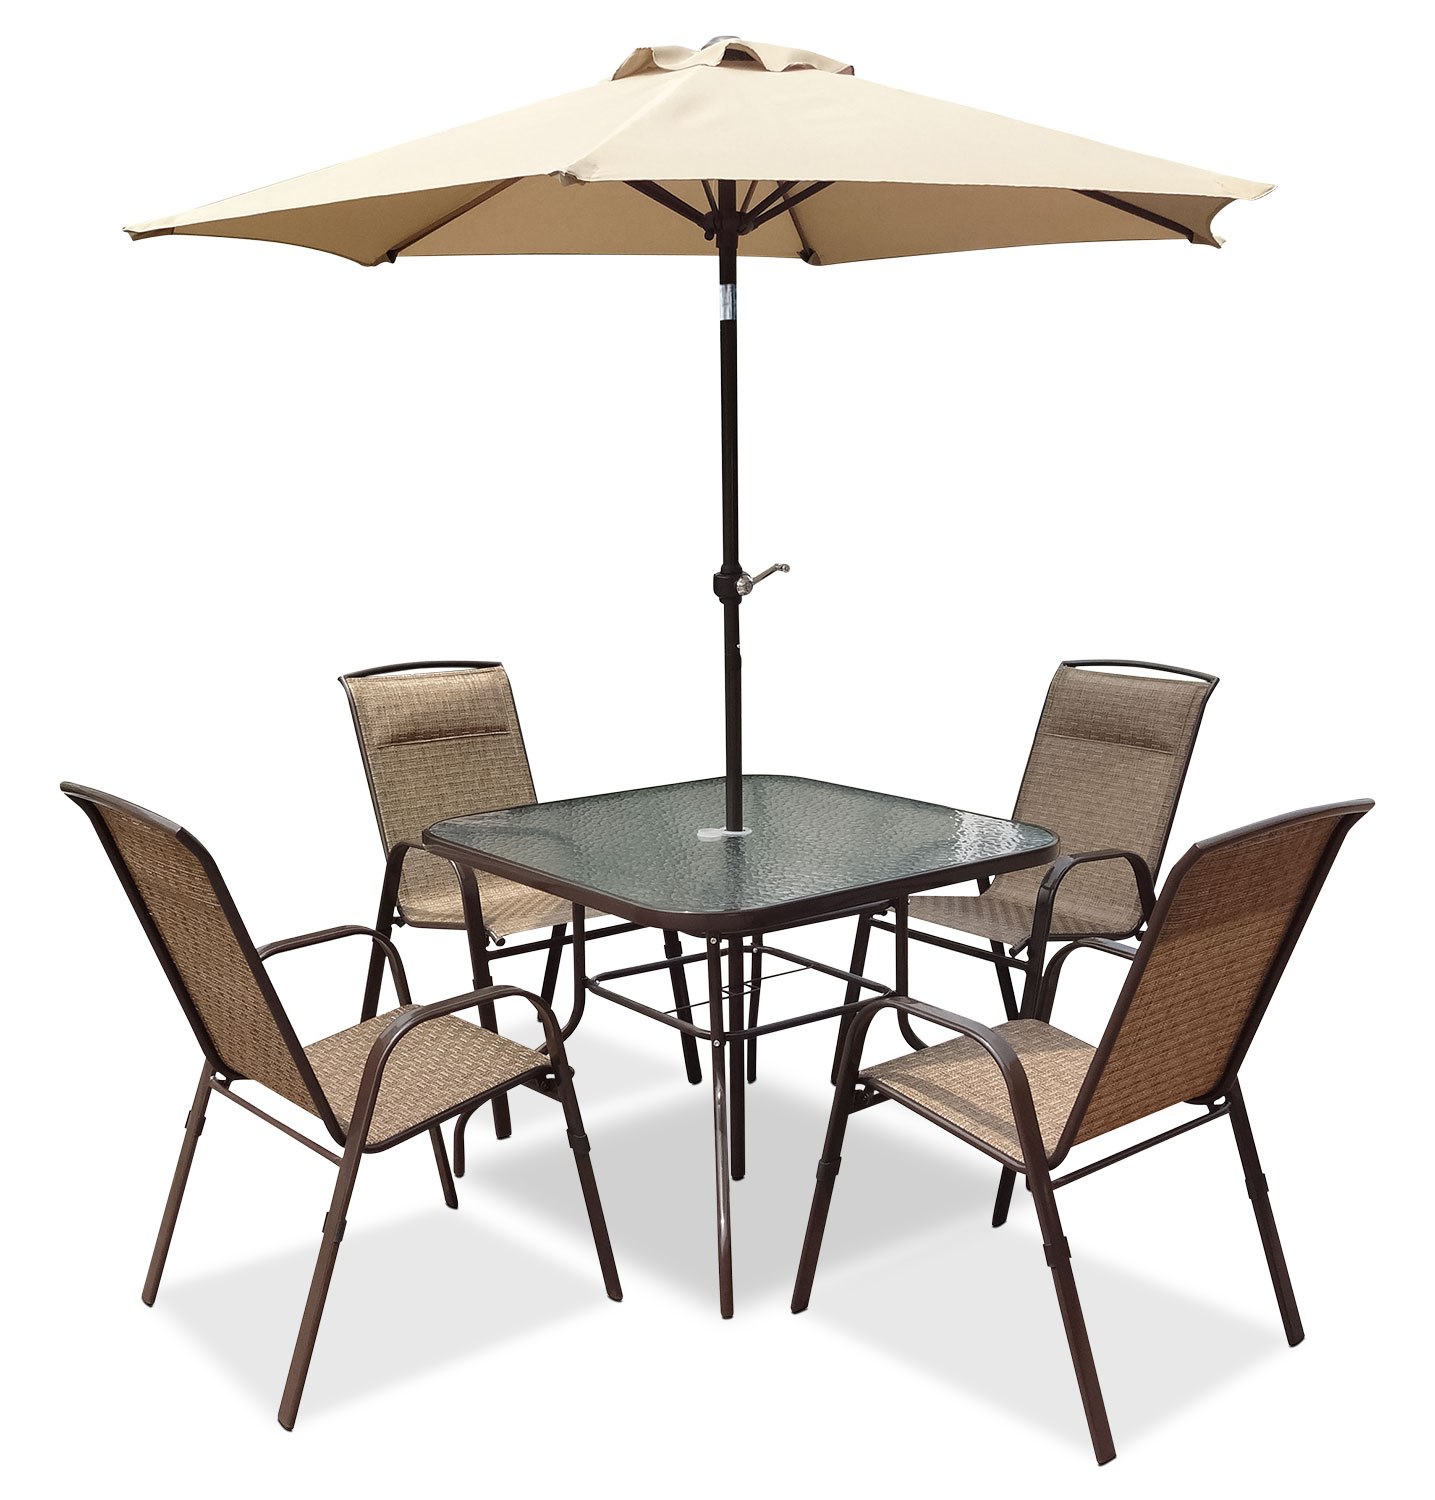 CorLiving 6 Piece Patio Dining Set With Umbrella The Brick